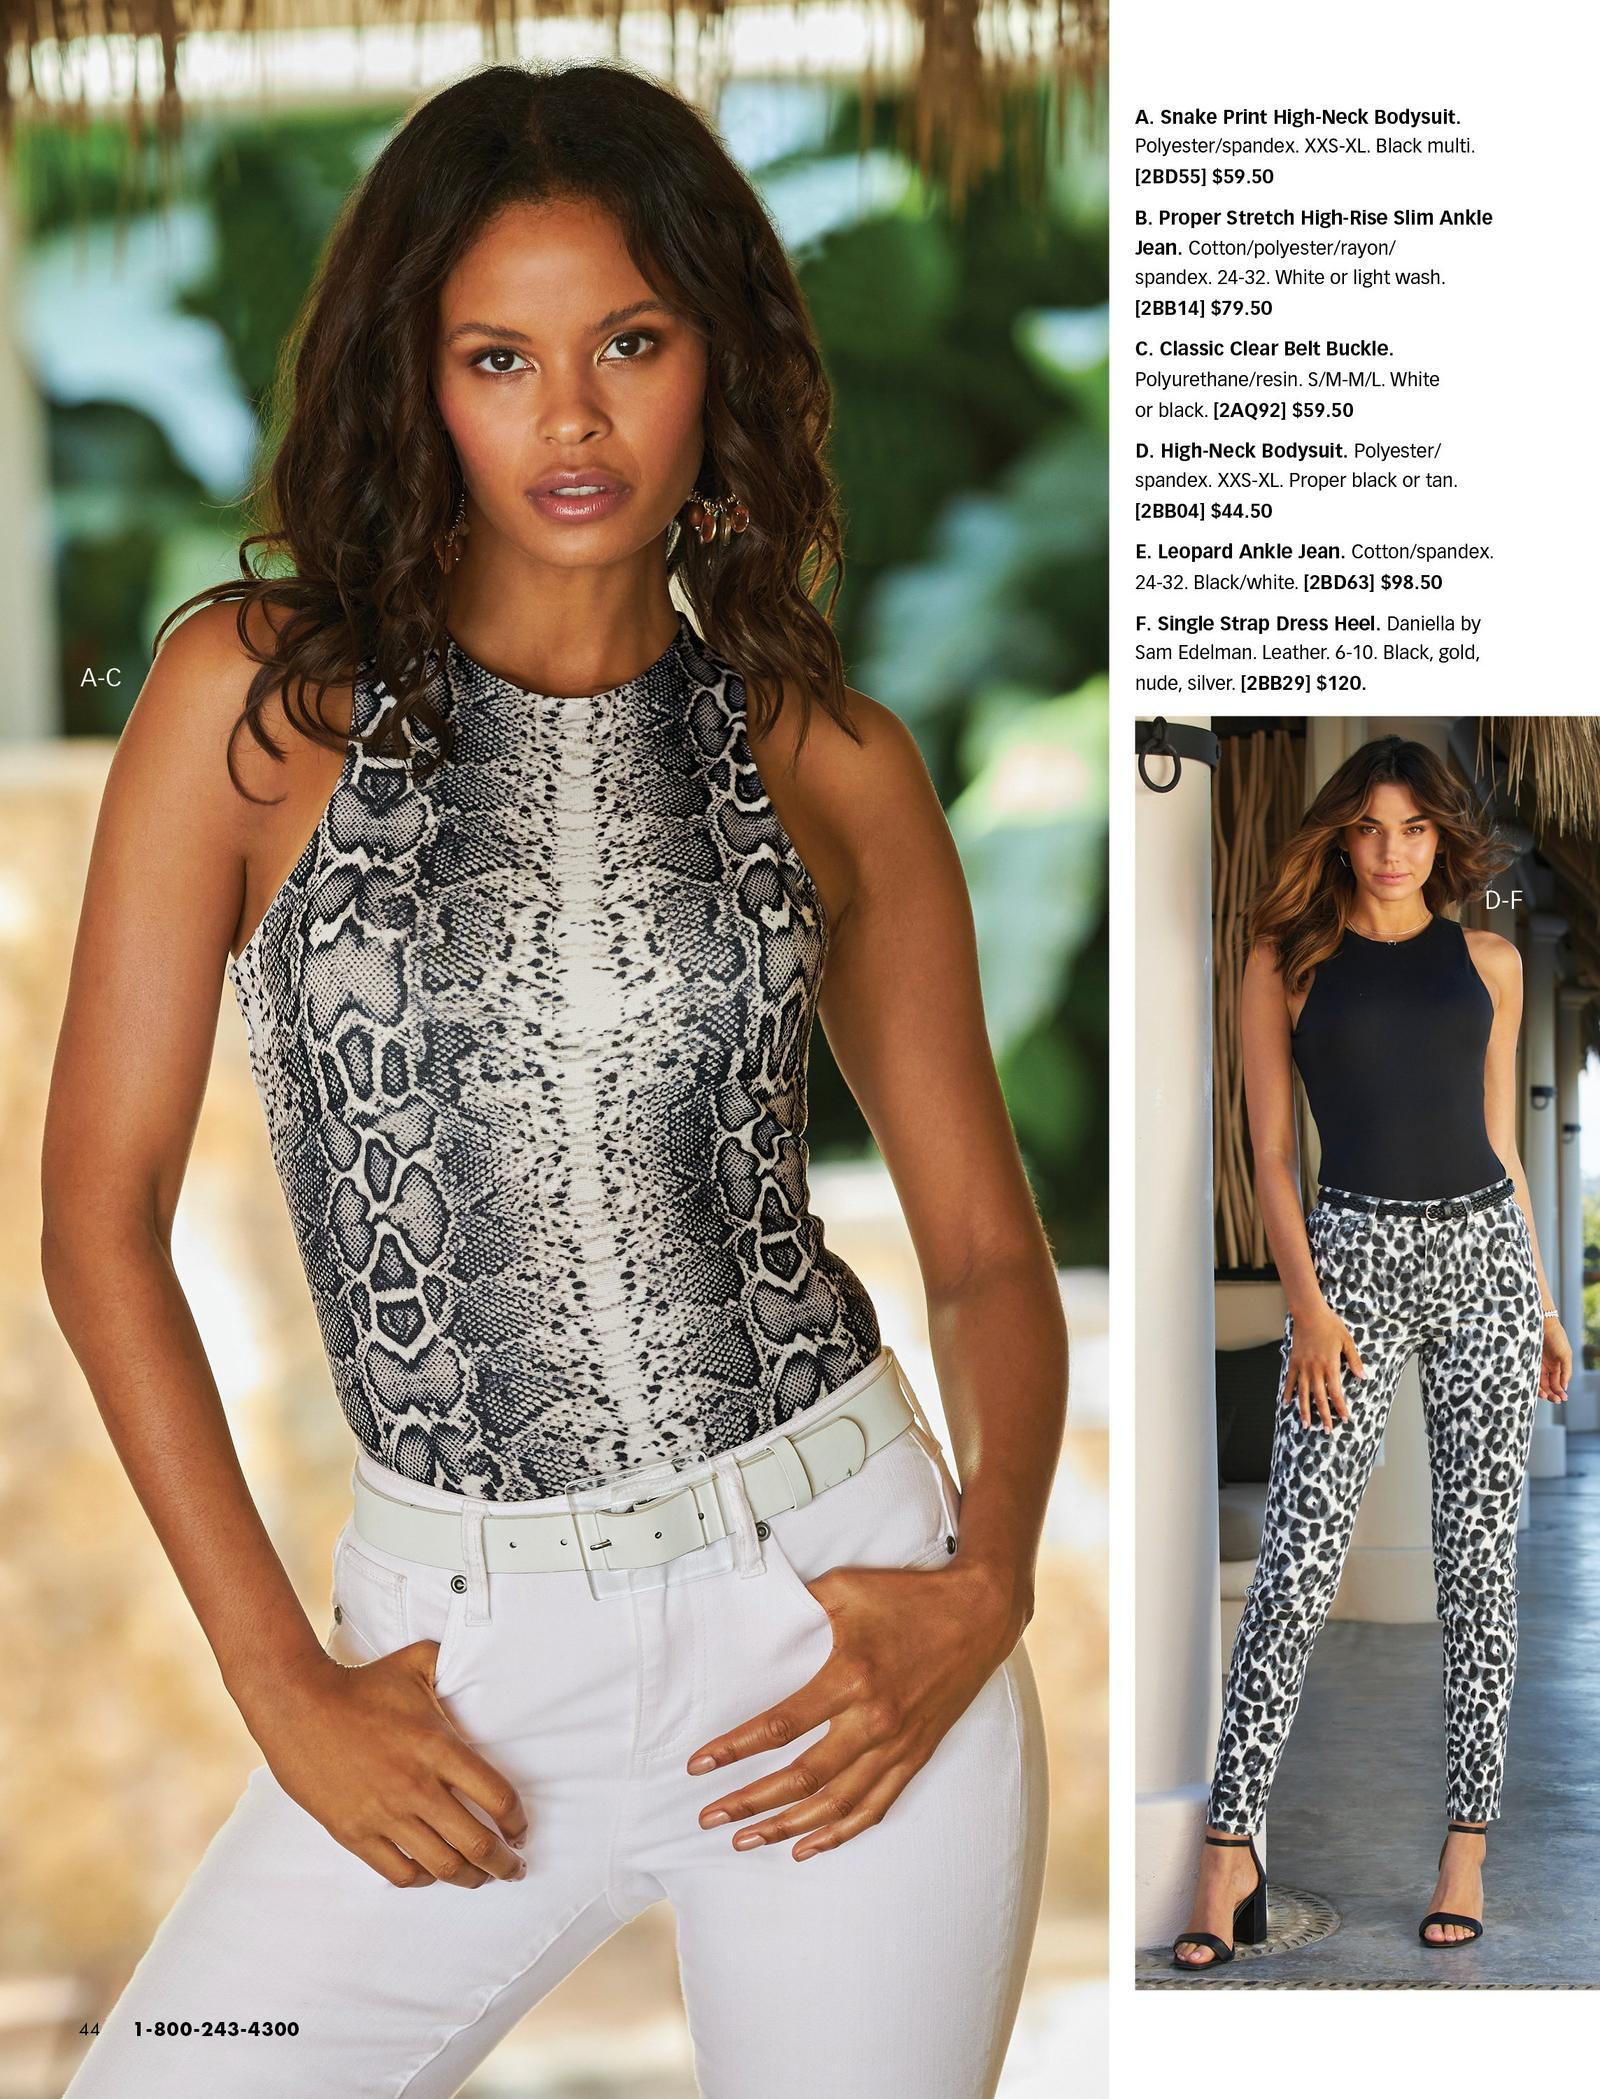 model wearing a black and white snake print high-neck tank top, white belt, and white jeans. right model wearing a black high-neck sleeveless top, black belt, leopard print black and white jeans, and black single-strap heels.